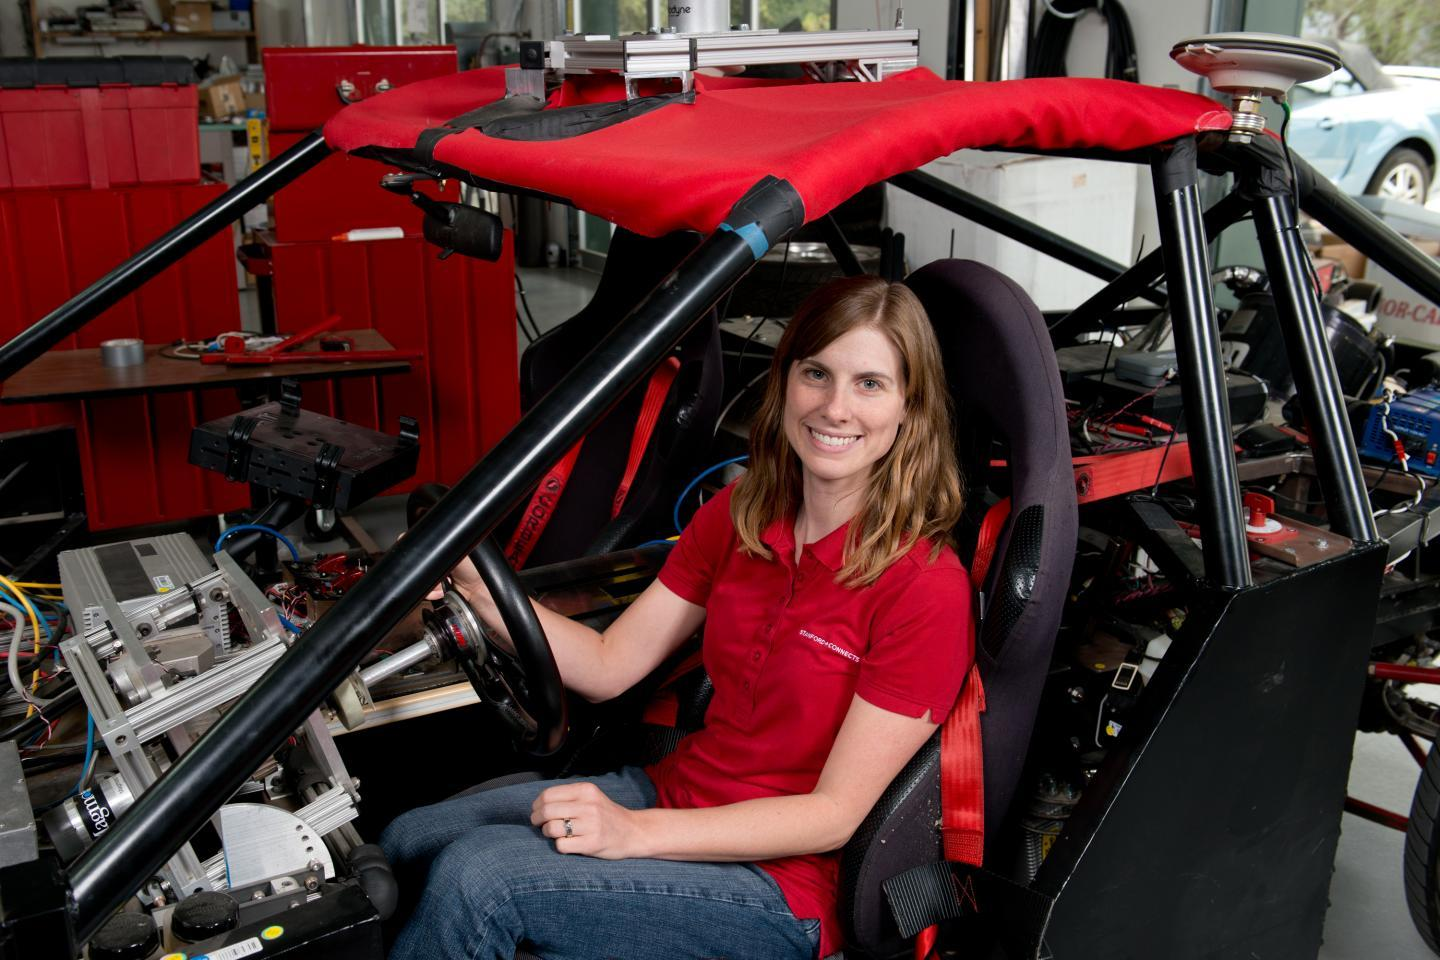 Lead author of the study, Holly Russell, a former graduate student in the Dynamic Design Lab